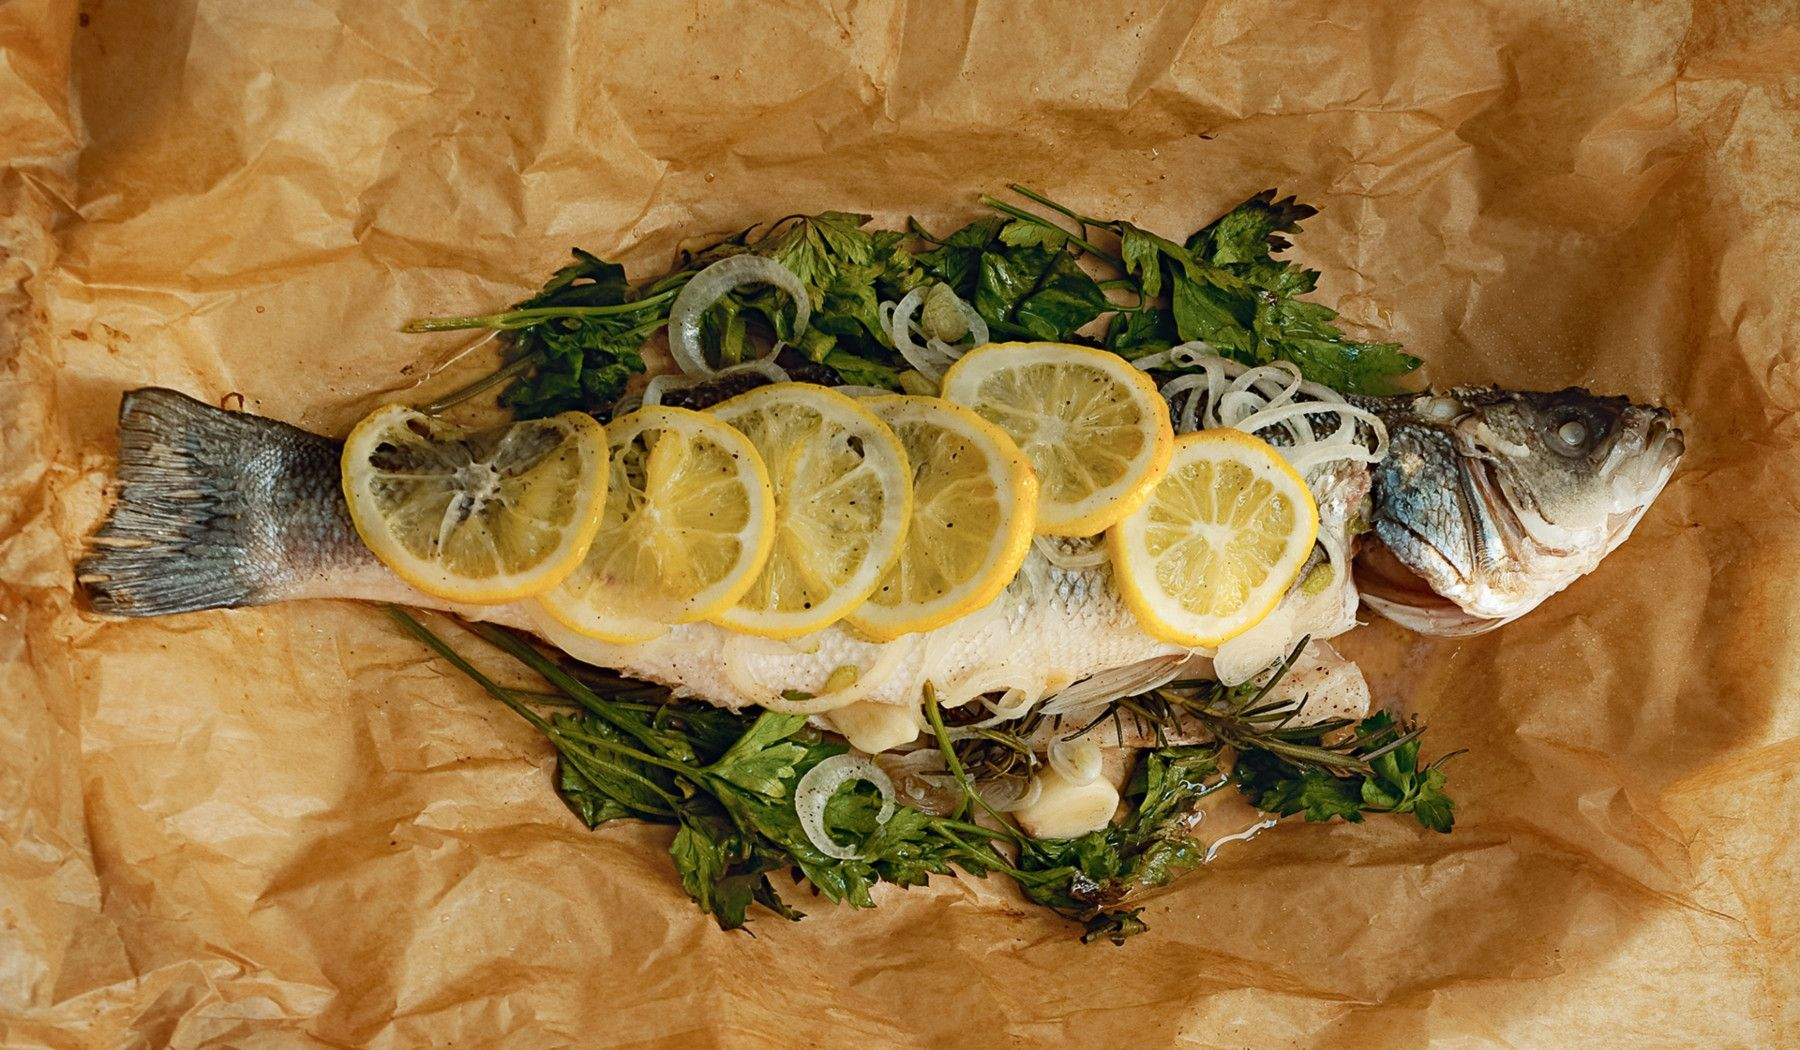 Recipe: Sea Bass baked in a package : To celebrate 10 years since it was first published, Phaidon's now cult-followed 'The Silver Spoon' recipe book is back with a quick and easy version. Here, this recipe, and three others to follow, show how delicious Italian cuisine can be prepared in under 30 minutes.